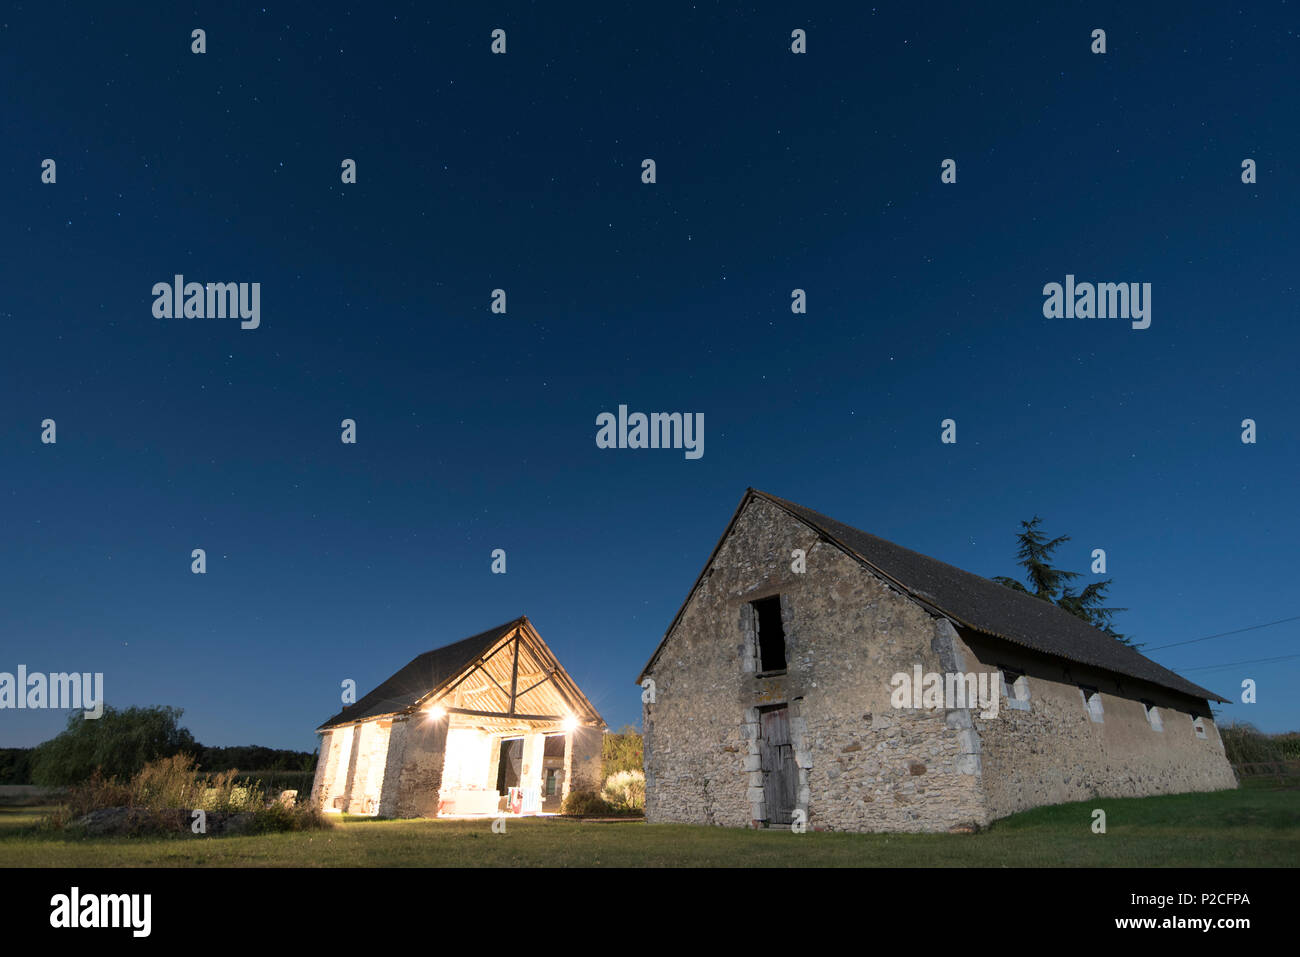 Moon lit barns on a French farm - Stock Image